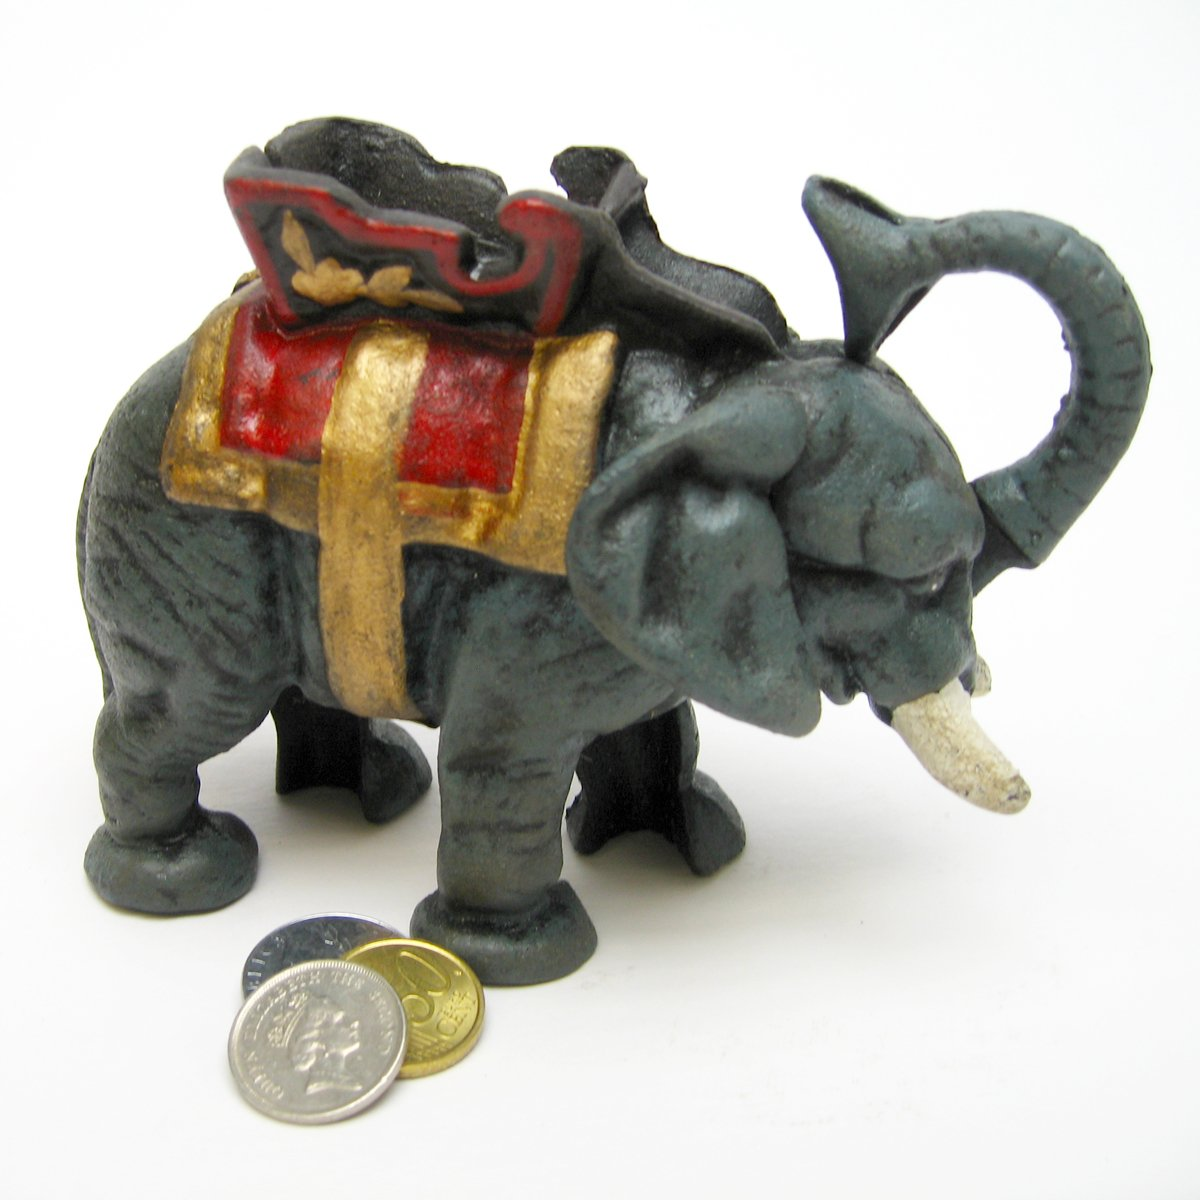 Design Toscano Circus Elephant Collectors' Die Cast Iron Mechanical Coin Bank by Design Toscano (Image #3)